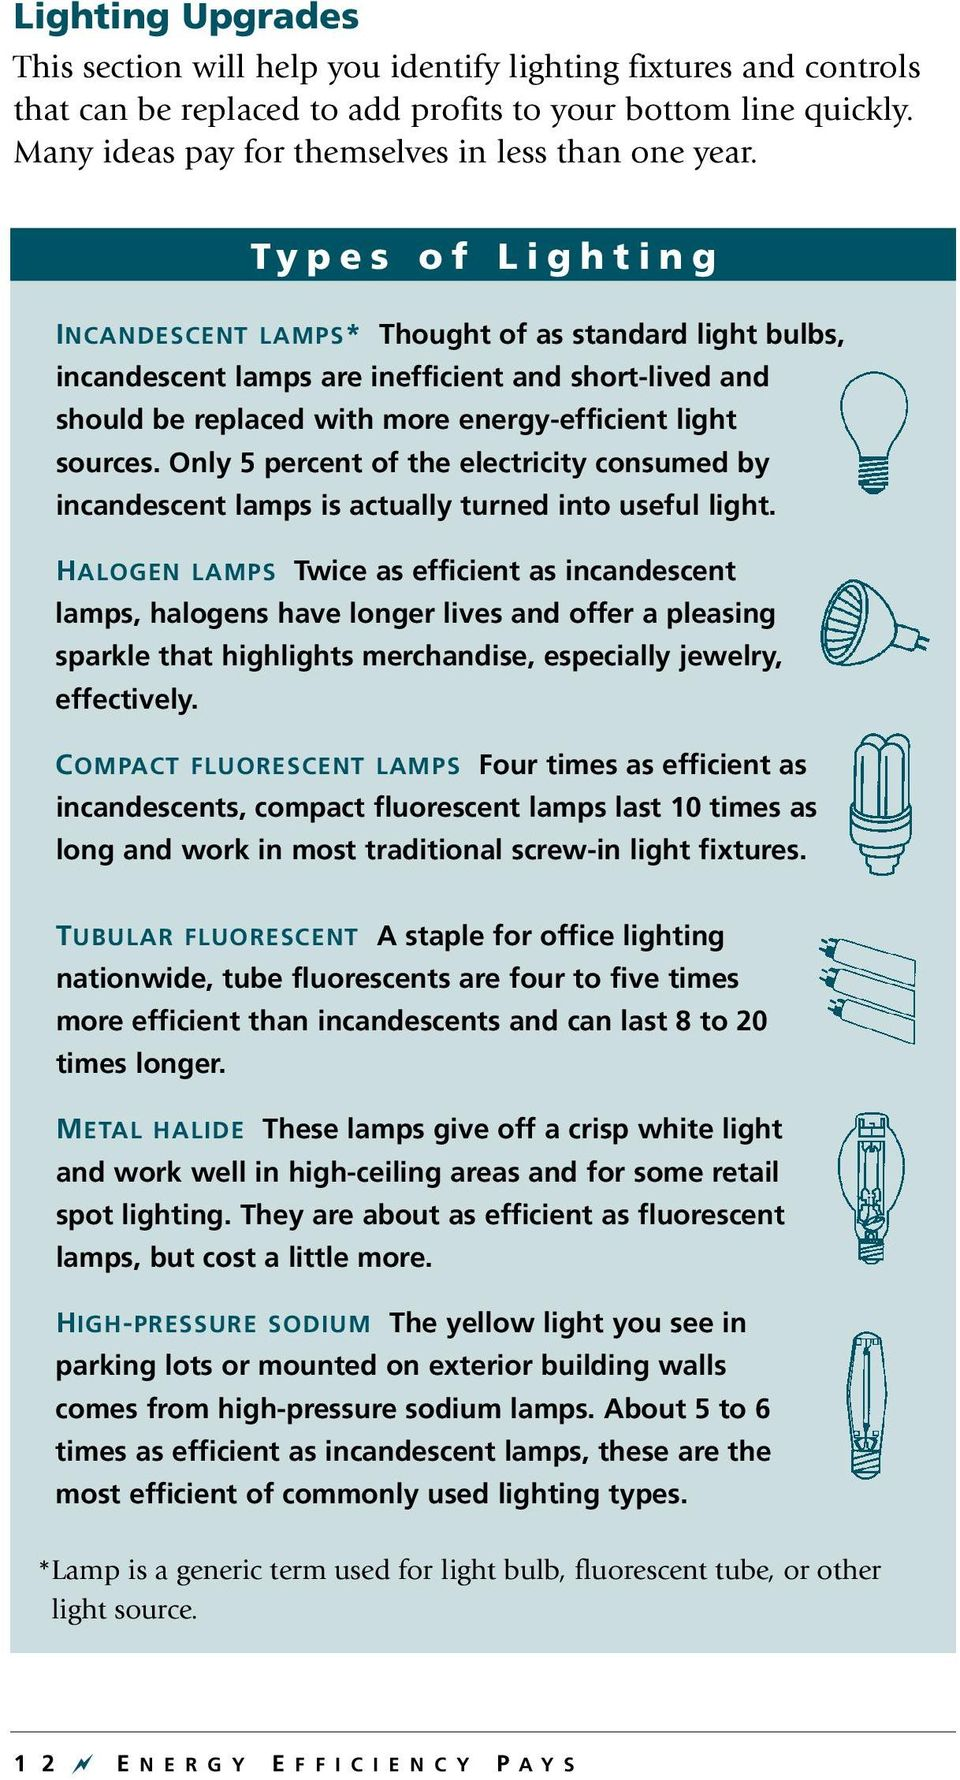 Types of Lighting INCANDESCENT LAMPS* Thought of as standard light bulbs, incandescent lamps are inefficient and short-lived and should be replaced with more energy-efficient light sources.